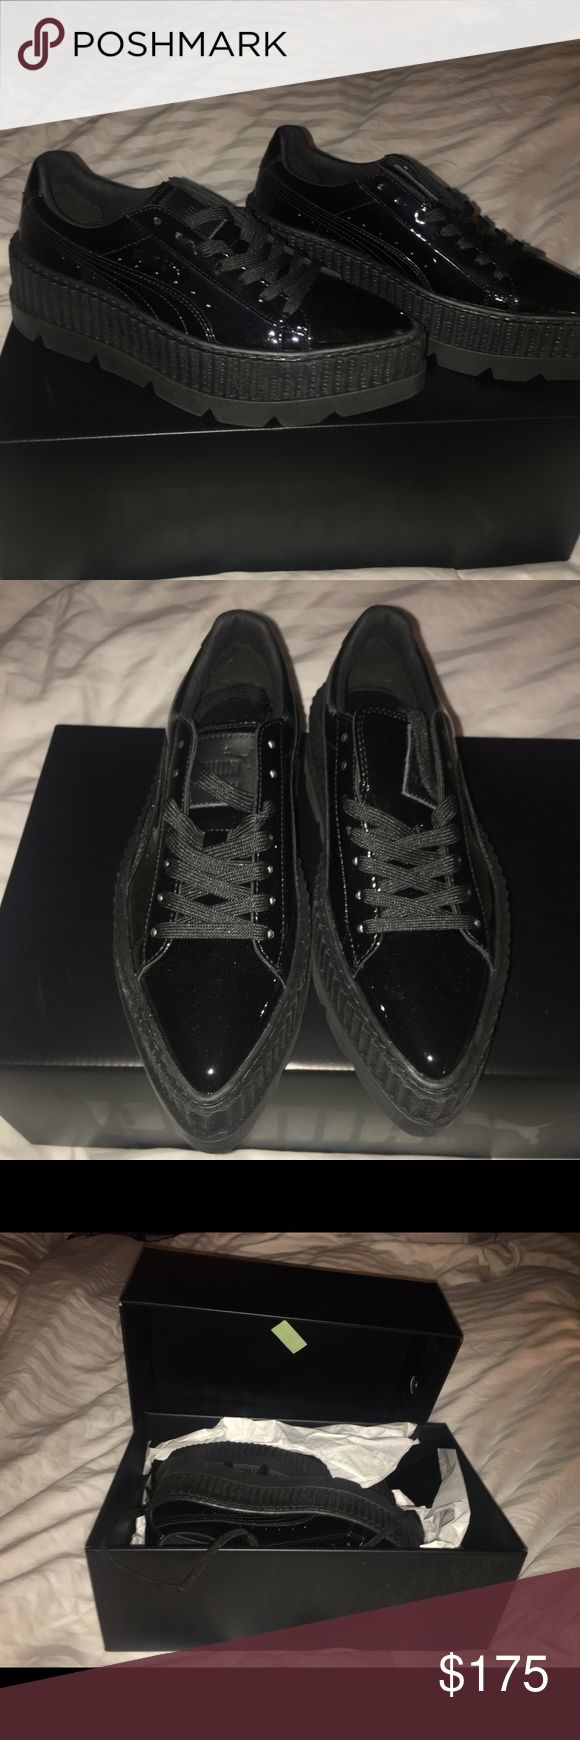 Size 5.5 Fenty Puma Women's Creeper Patent Leather 100% real, authentic Fenty X Rihanna Platform Creepers. Black Patent leather. Never ever been worn, comes with original packaging!! Bought them online and (foolishly) didn't check the return policy and paid full price but they end up not fitting😿. Up for price negotiation! Puma Shoes Sneakers